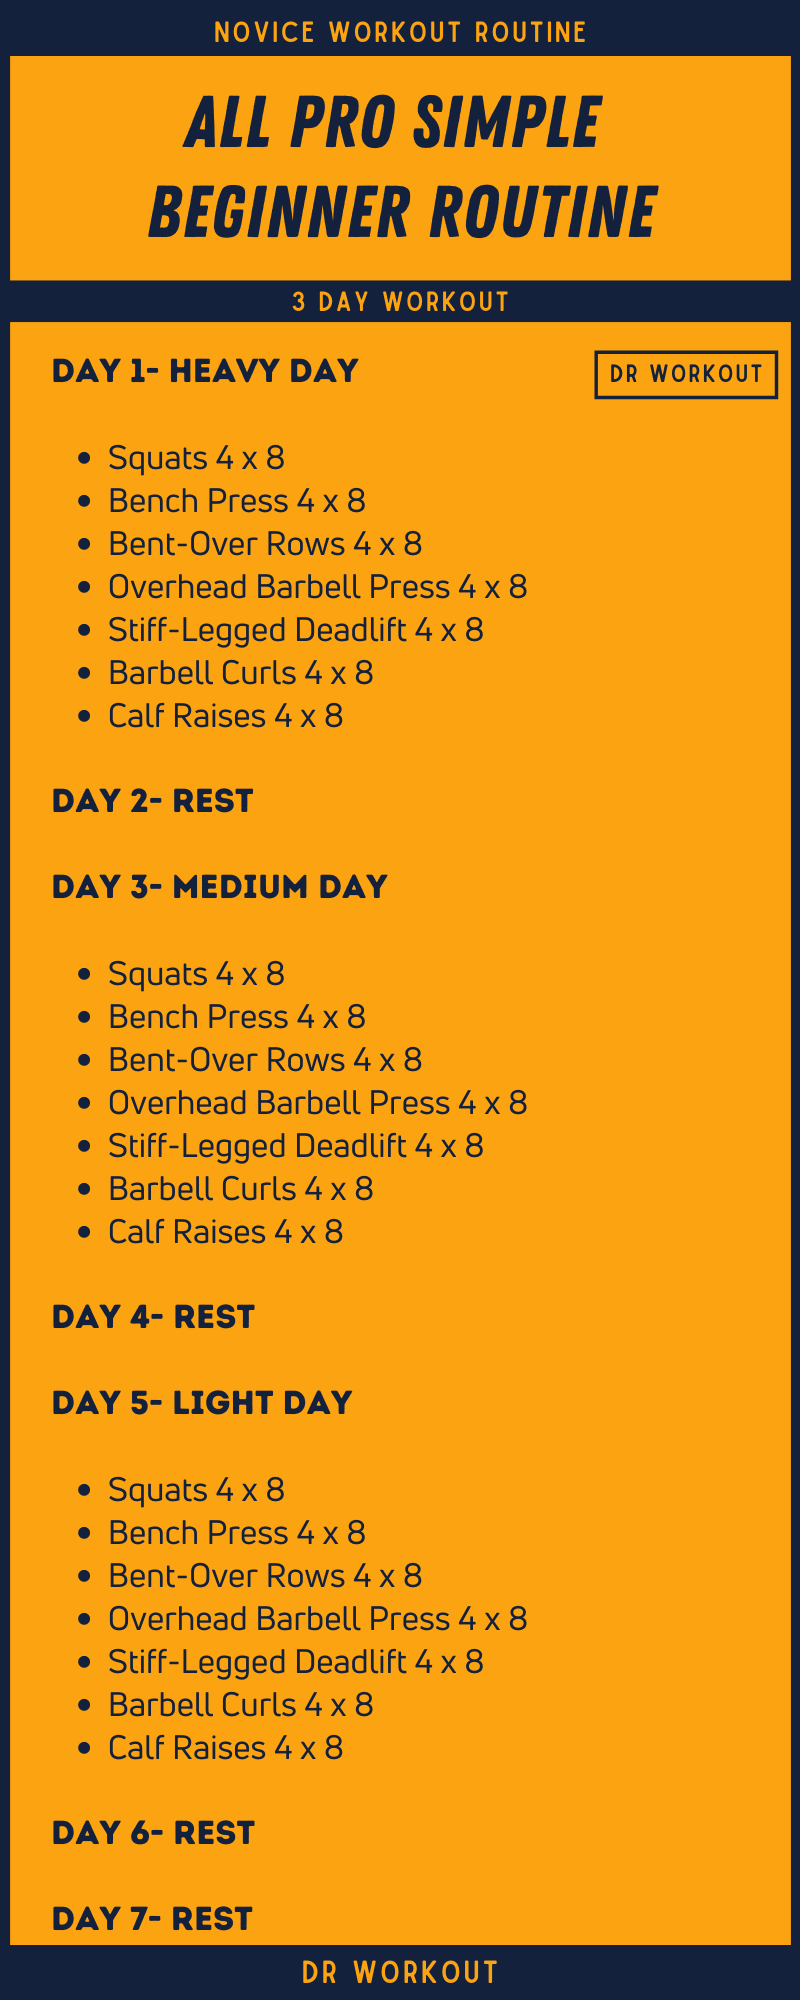 All Pro Simple Beginner Routine